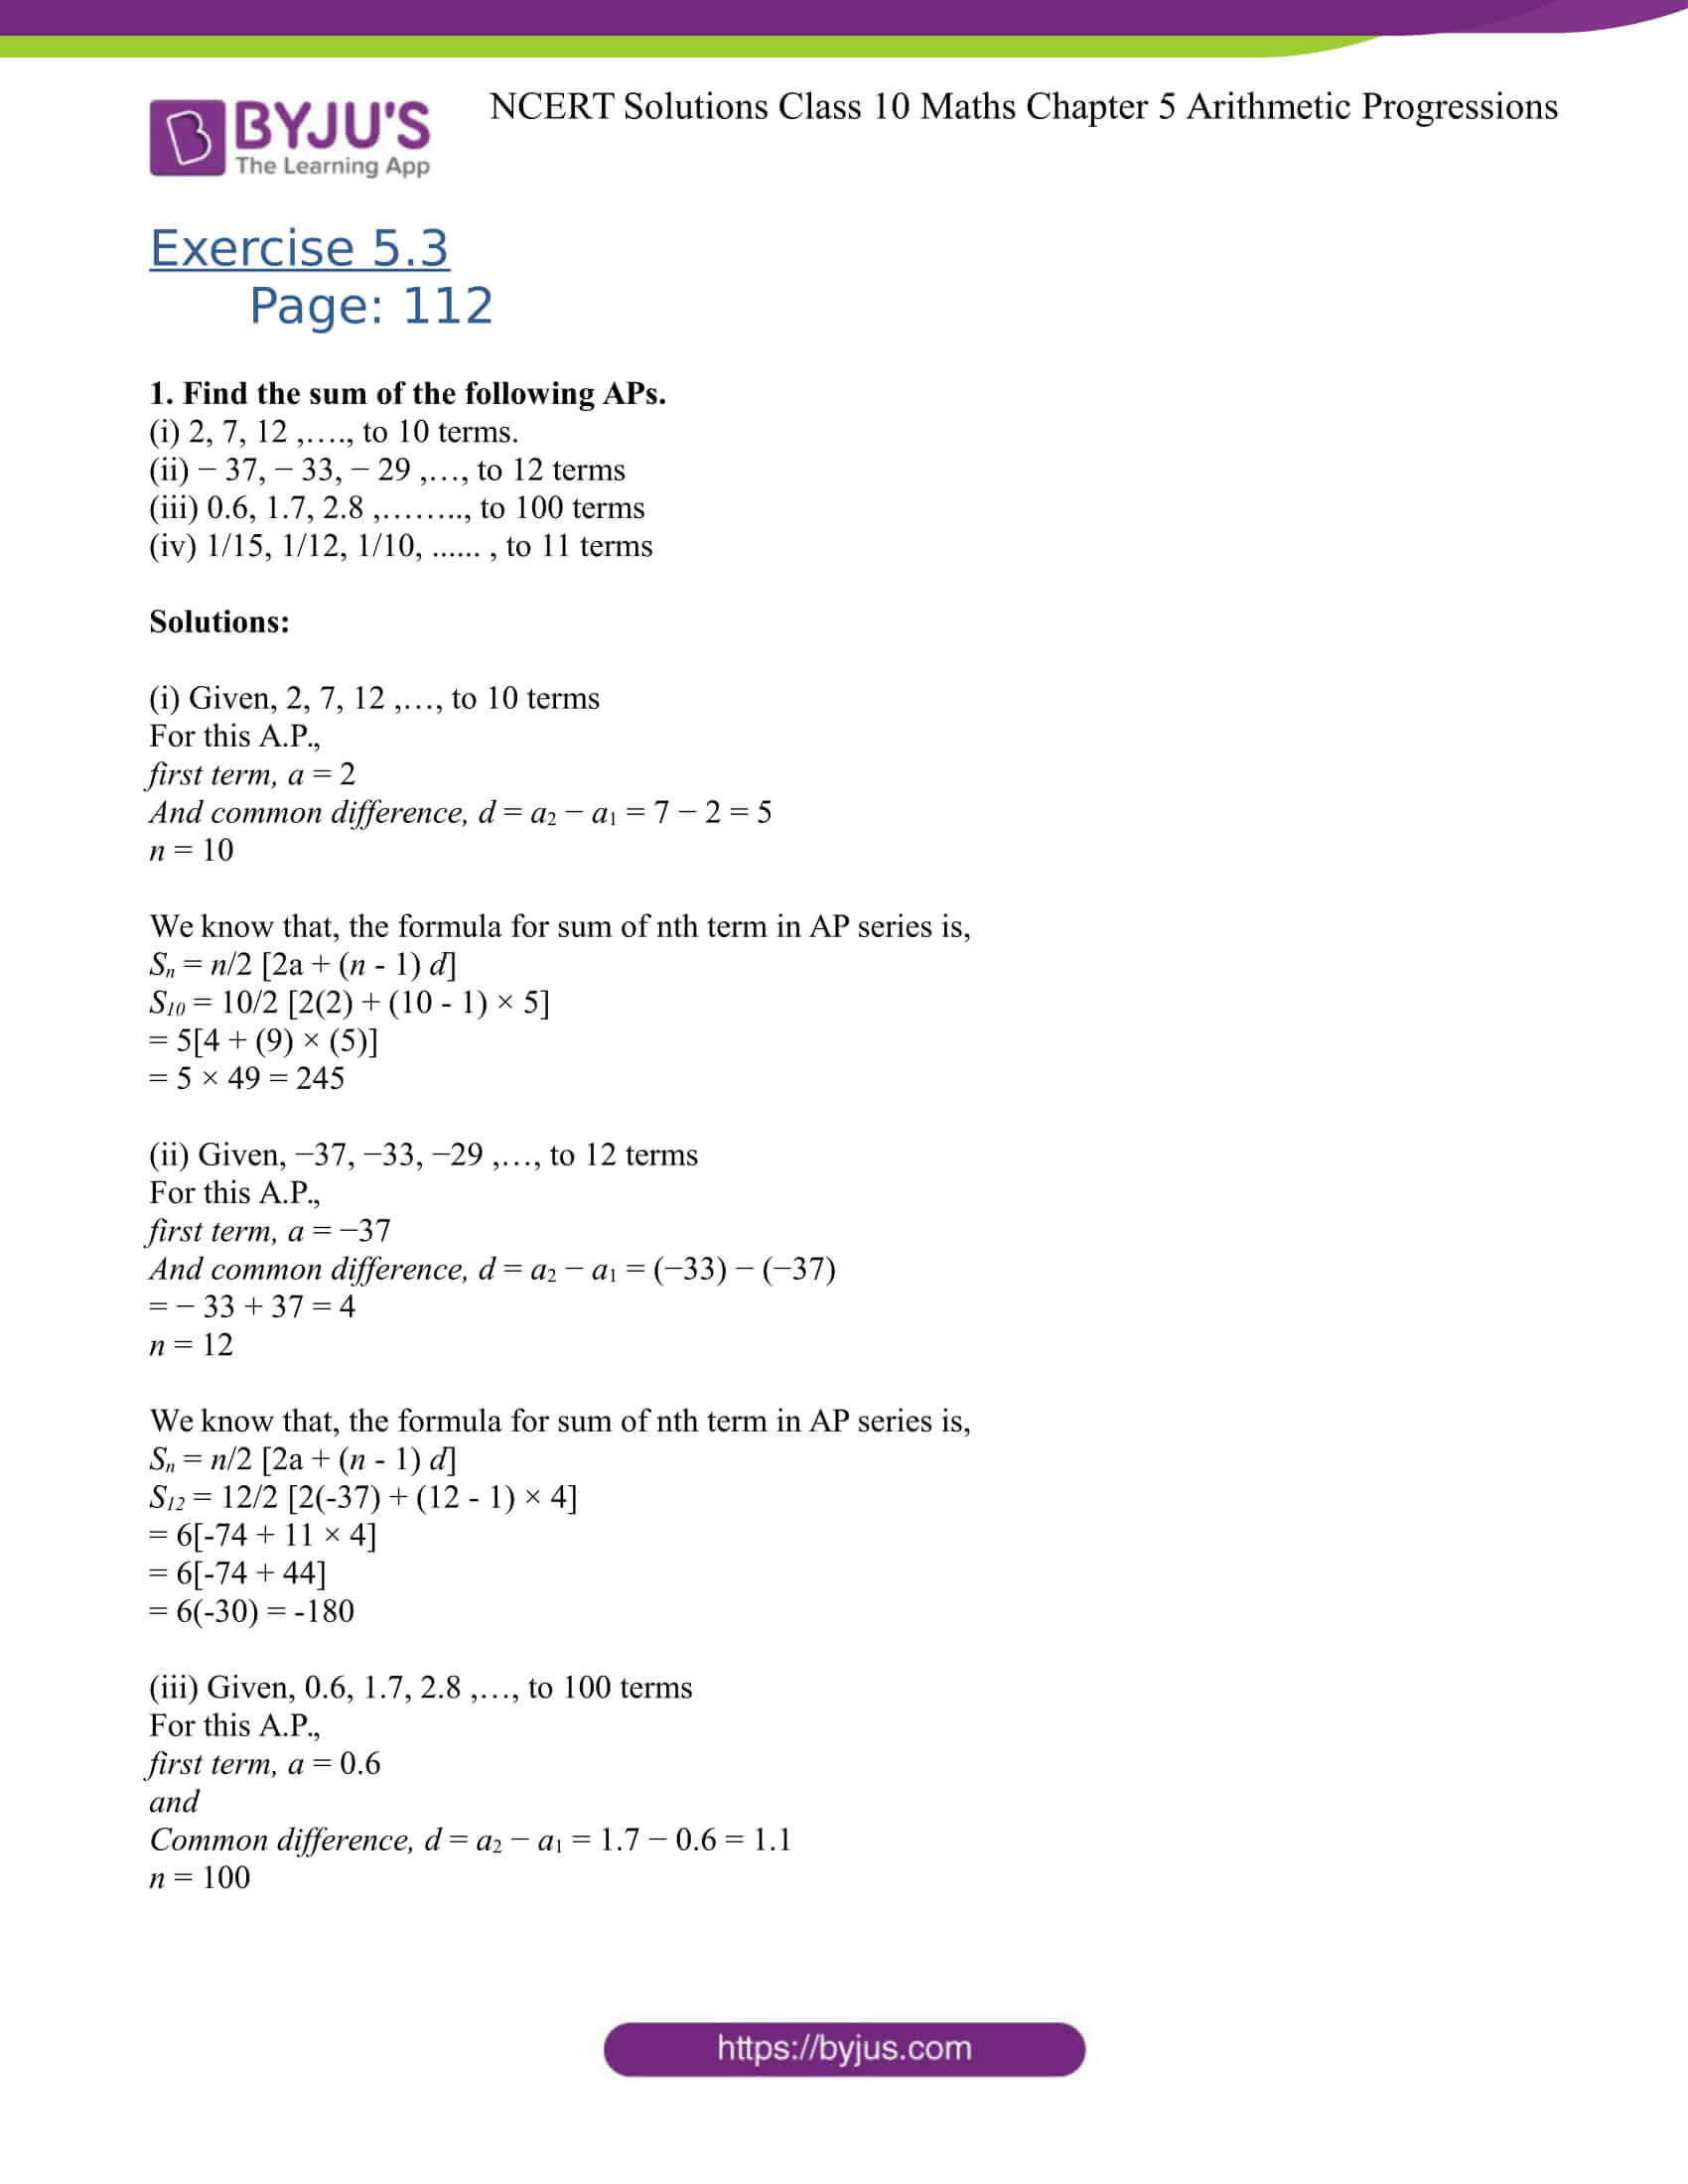 NCERT Solutions for Class 10 Maths Exercise 5 3 Chapter 5